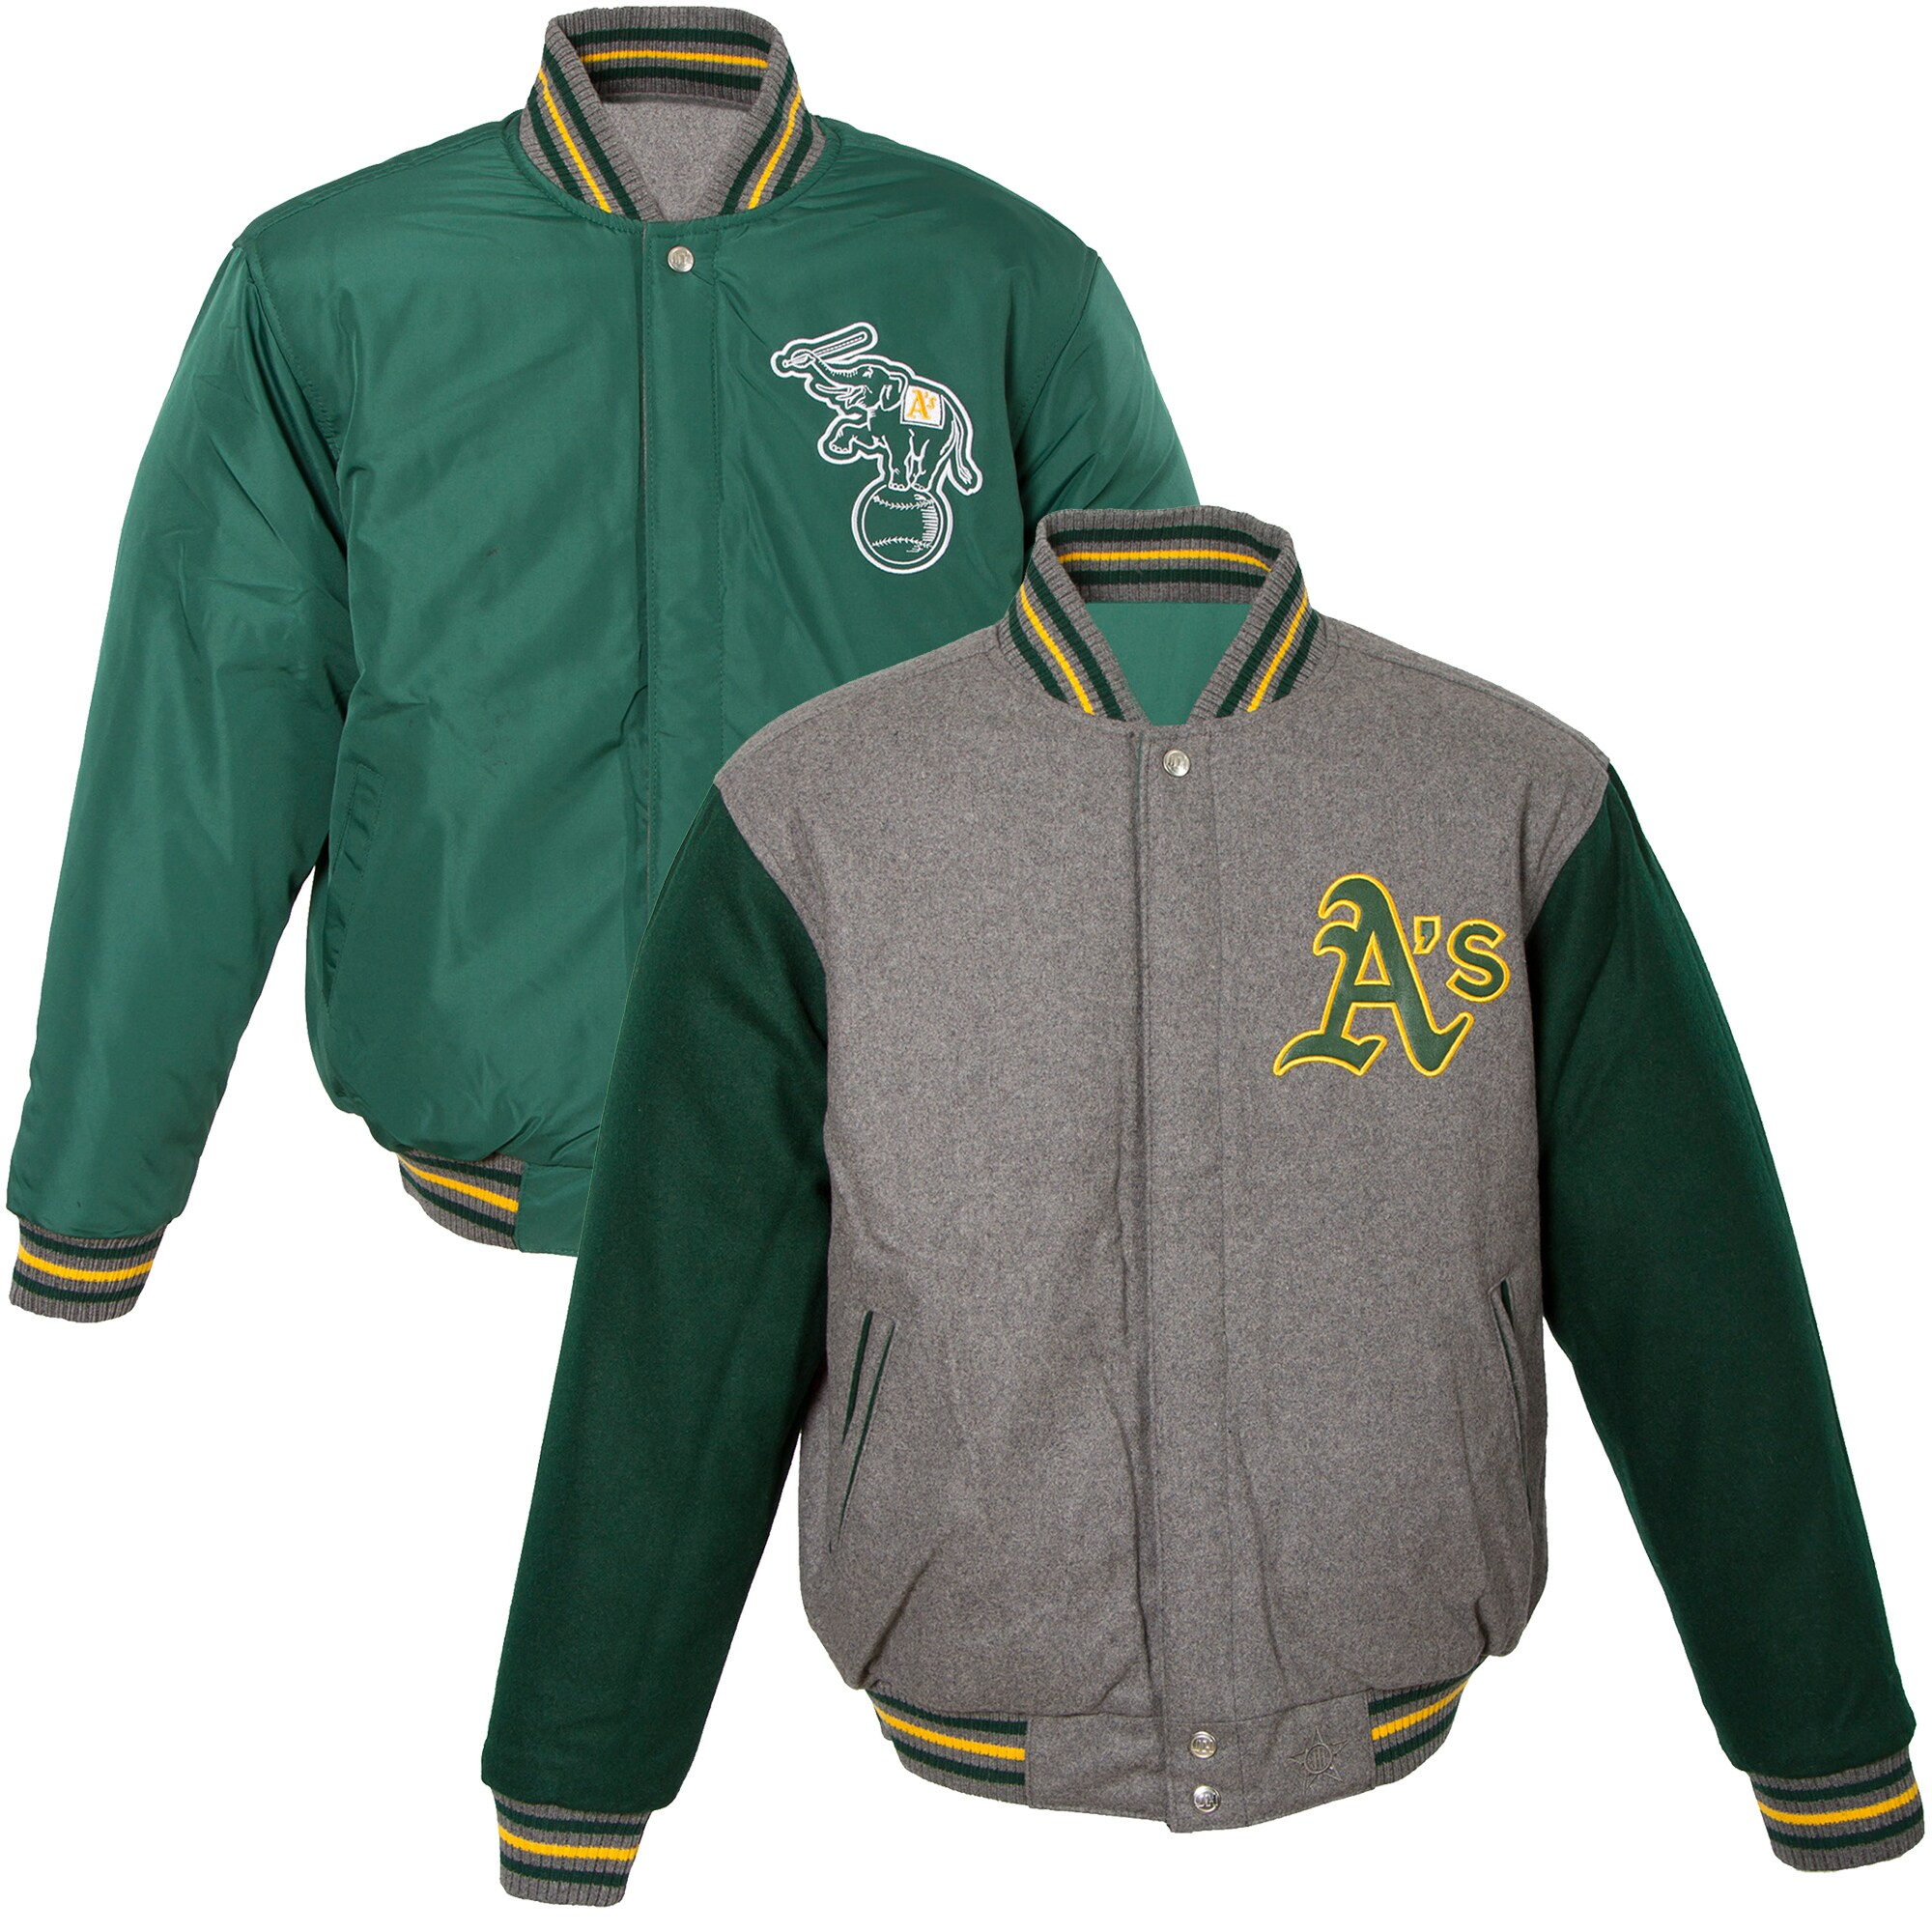 Oakland Athletics JH Design Youth Wool Reversible Varsity Full-Snap Jacket - Gray/Green